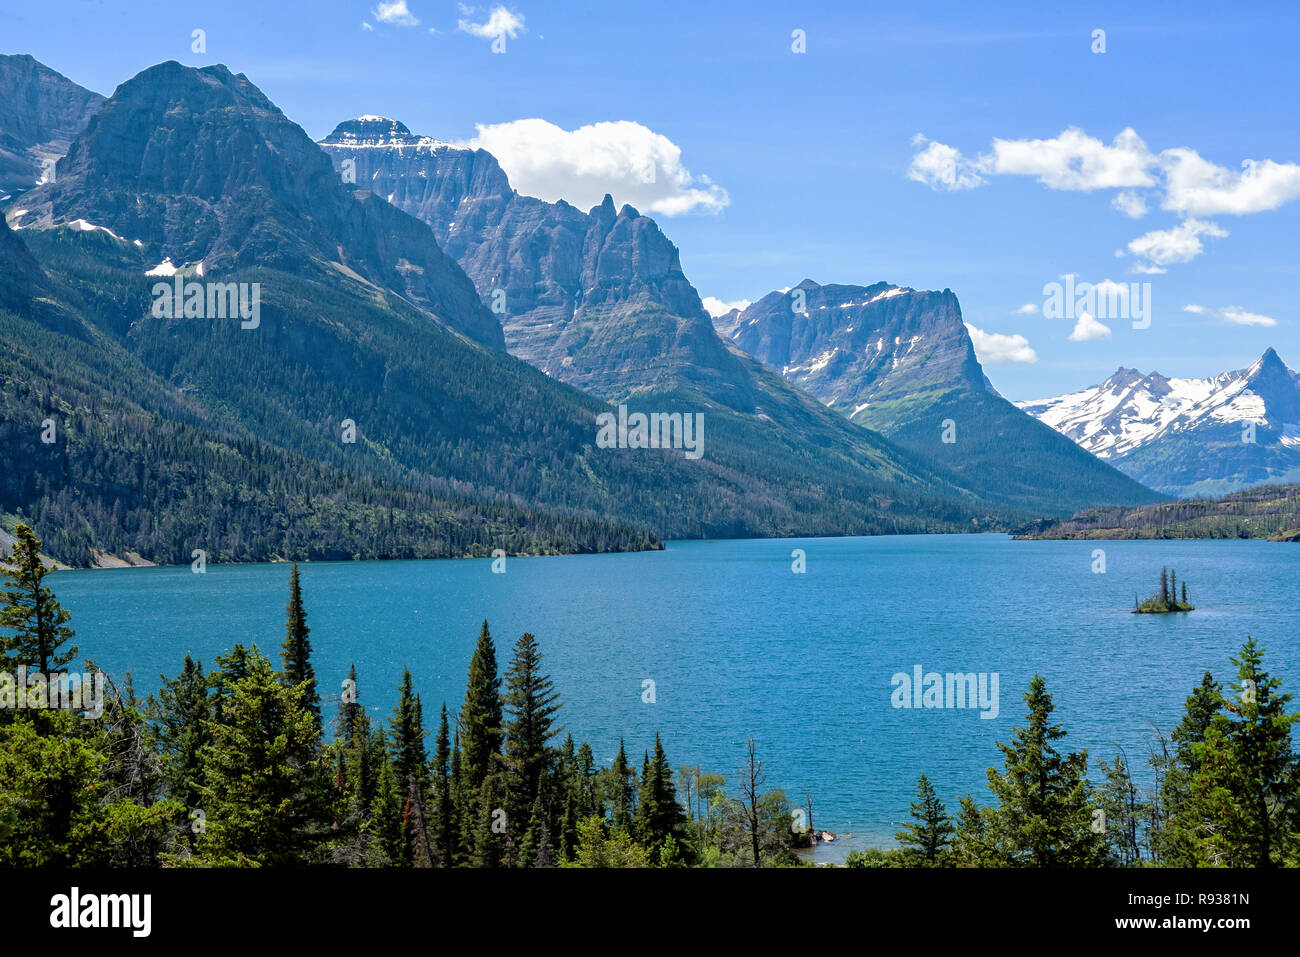 Wild Goose Island in Glacier National Park with Mountain Peaks in the Background - Stock Image